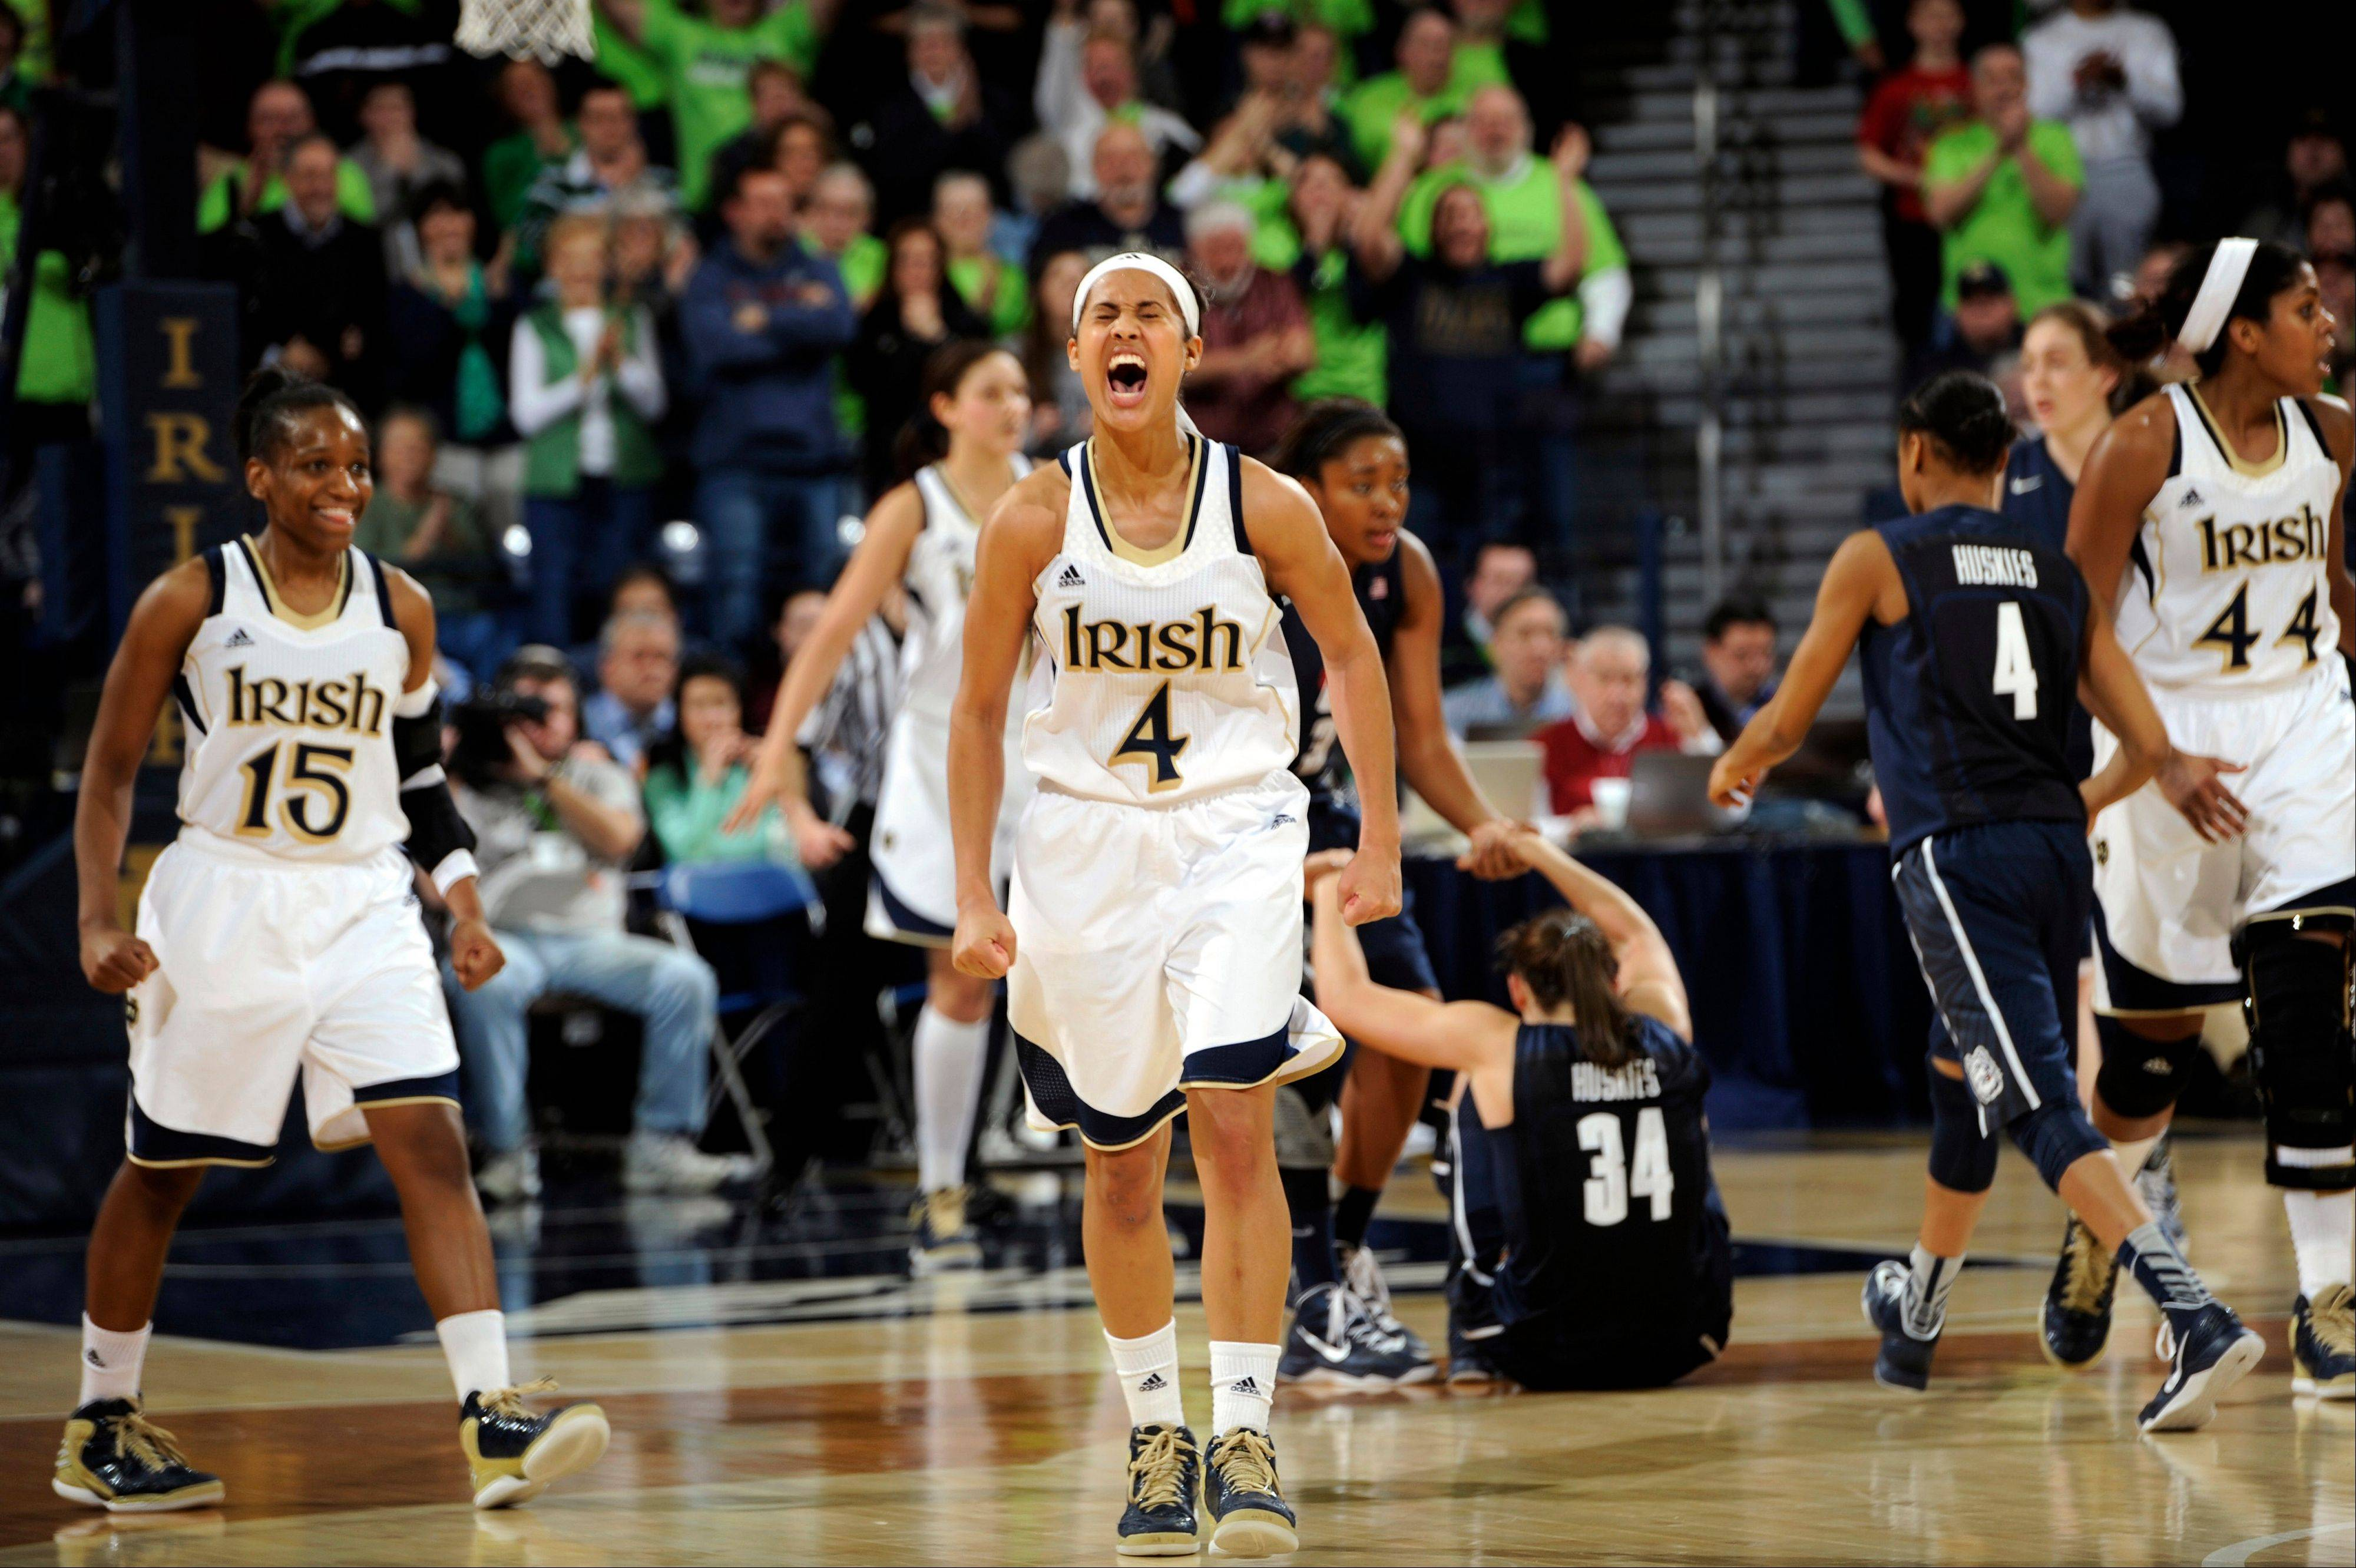 In this March 4, 2013, file photo, Notre Dame guard Skylar Diggins (4) celebrates a steal and the subsequent Connecticut foul during the third overtime of an NCAA college basketball game, Monday, March 4, 2013, in South Bend, Ind. Notre Dame was announced Monday, March 18, to join Connecticut, Stanford and Baylor as a No. 1 seed in the women's tournament, marking the second straight season those four schools were the top seeds.